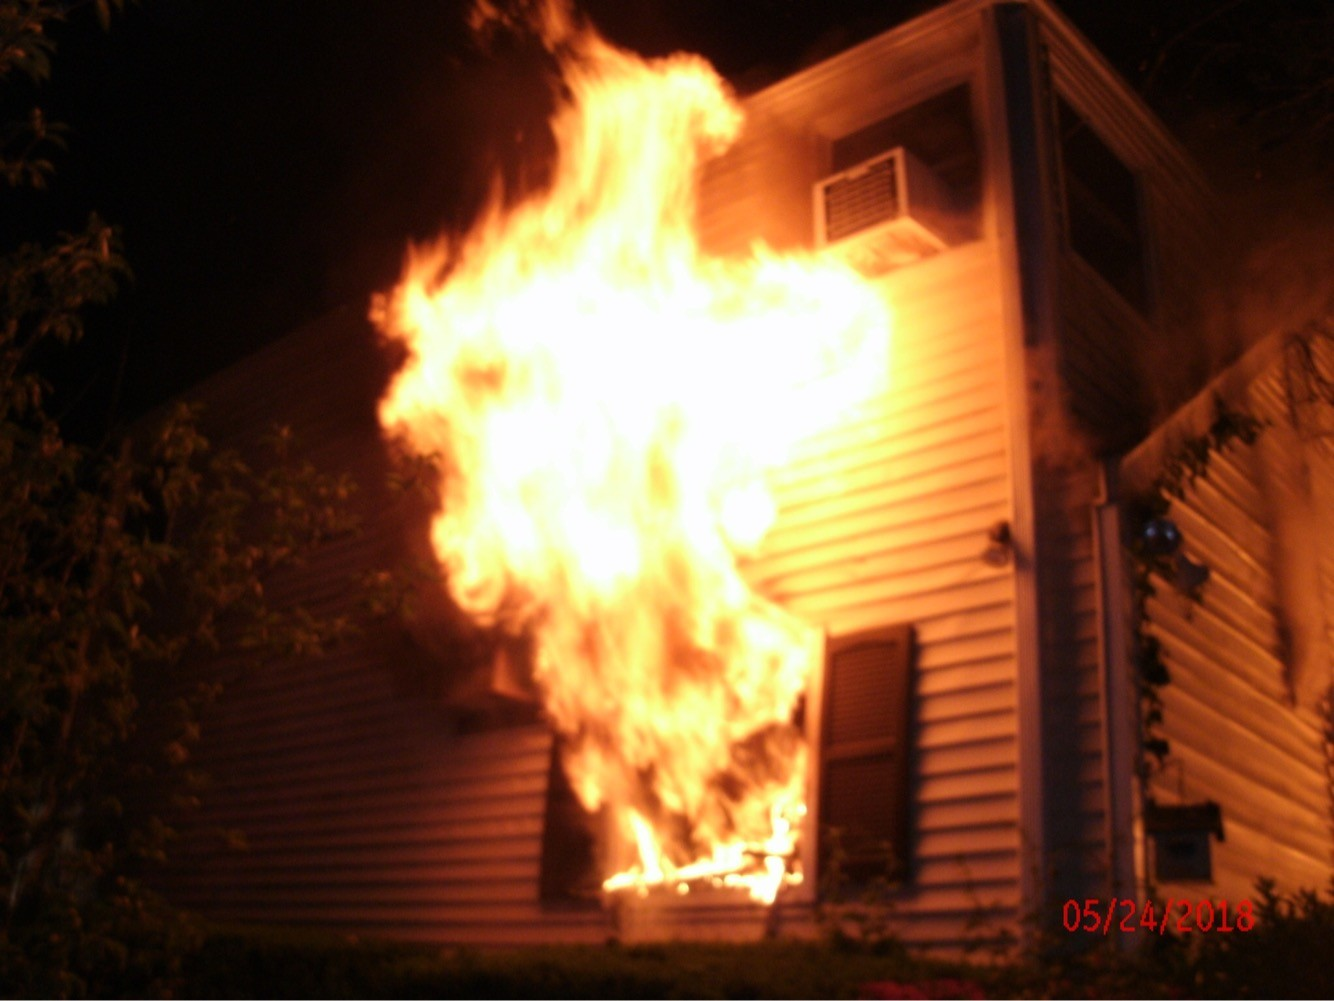 Roger Humes' home on Harwich Road in East Rockaway caught fire in the early morning hours of May 24.